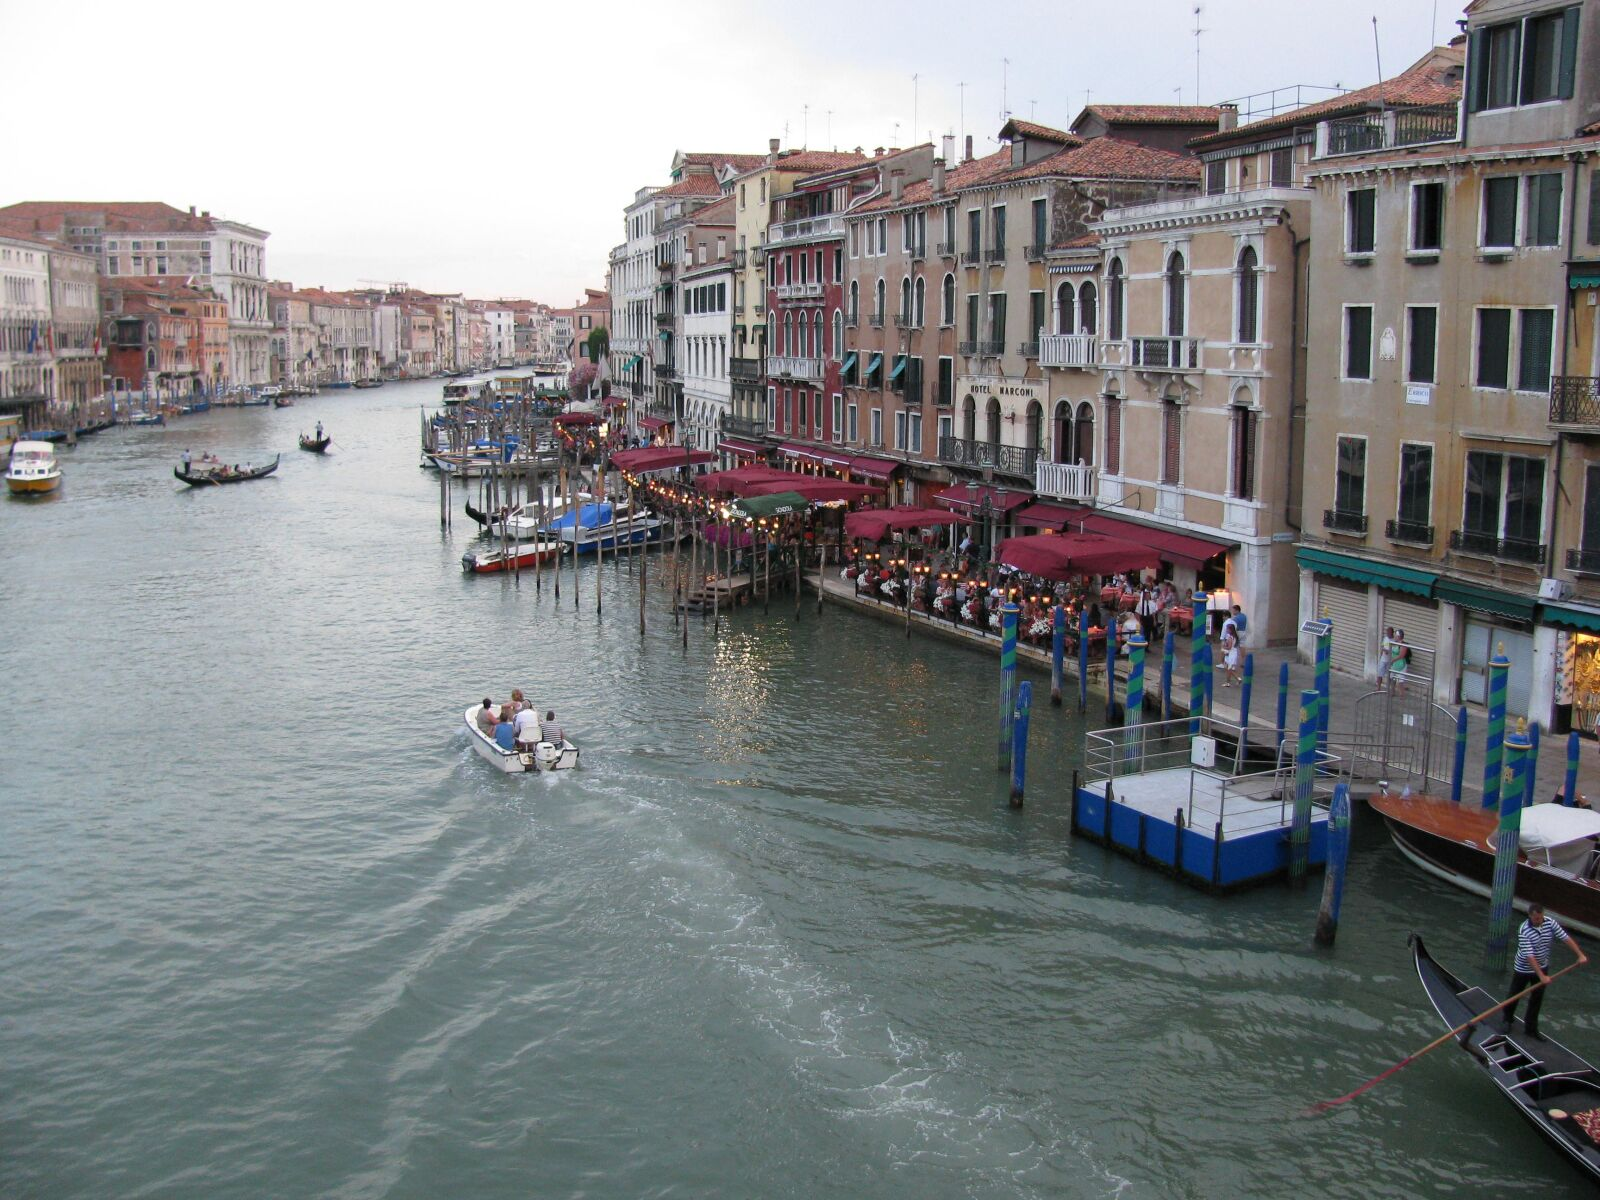 """Canon PowerShot SX110 IS sample photo. """"Venice, channel, italy"""" photography"""